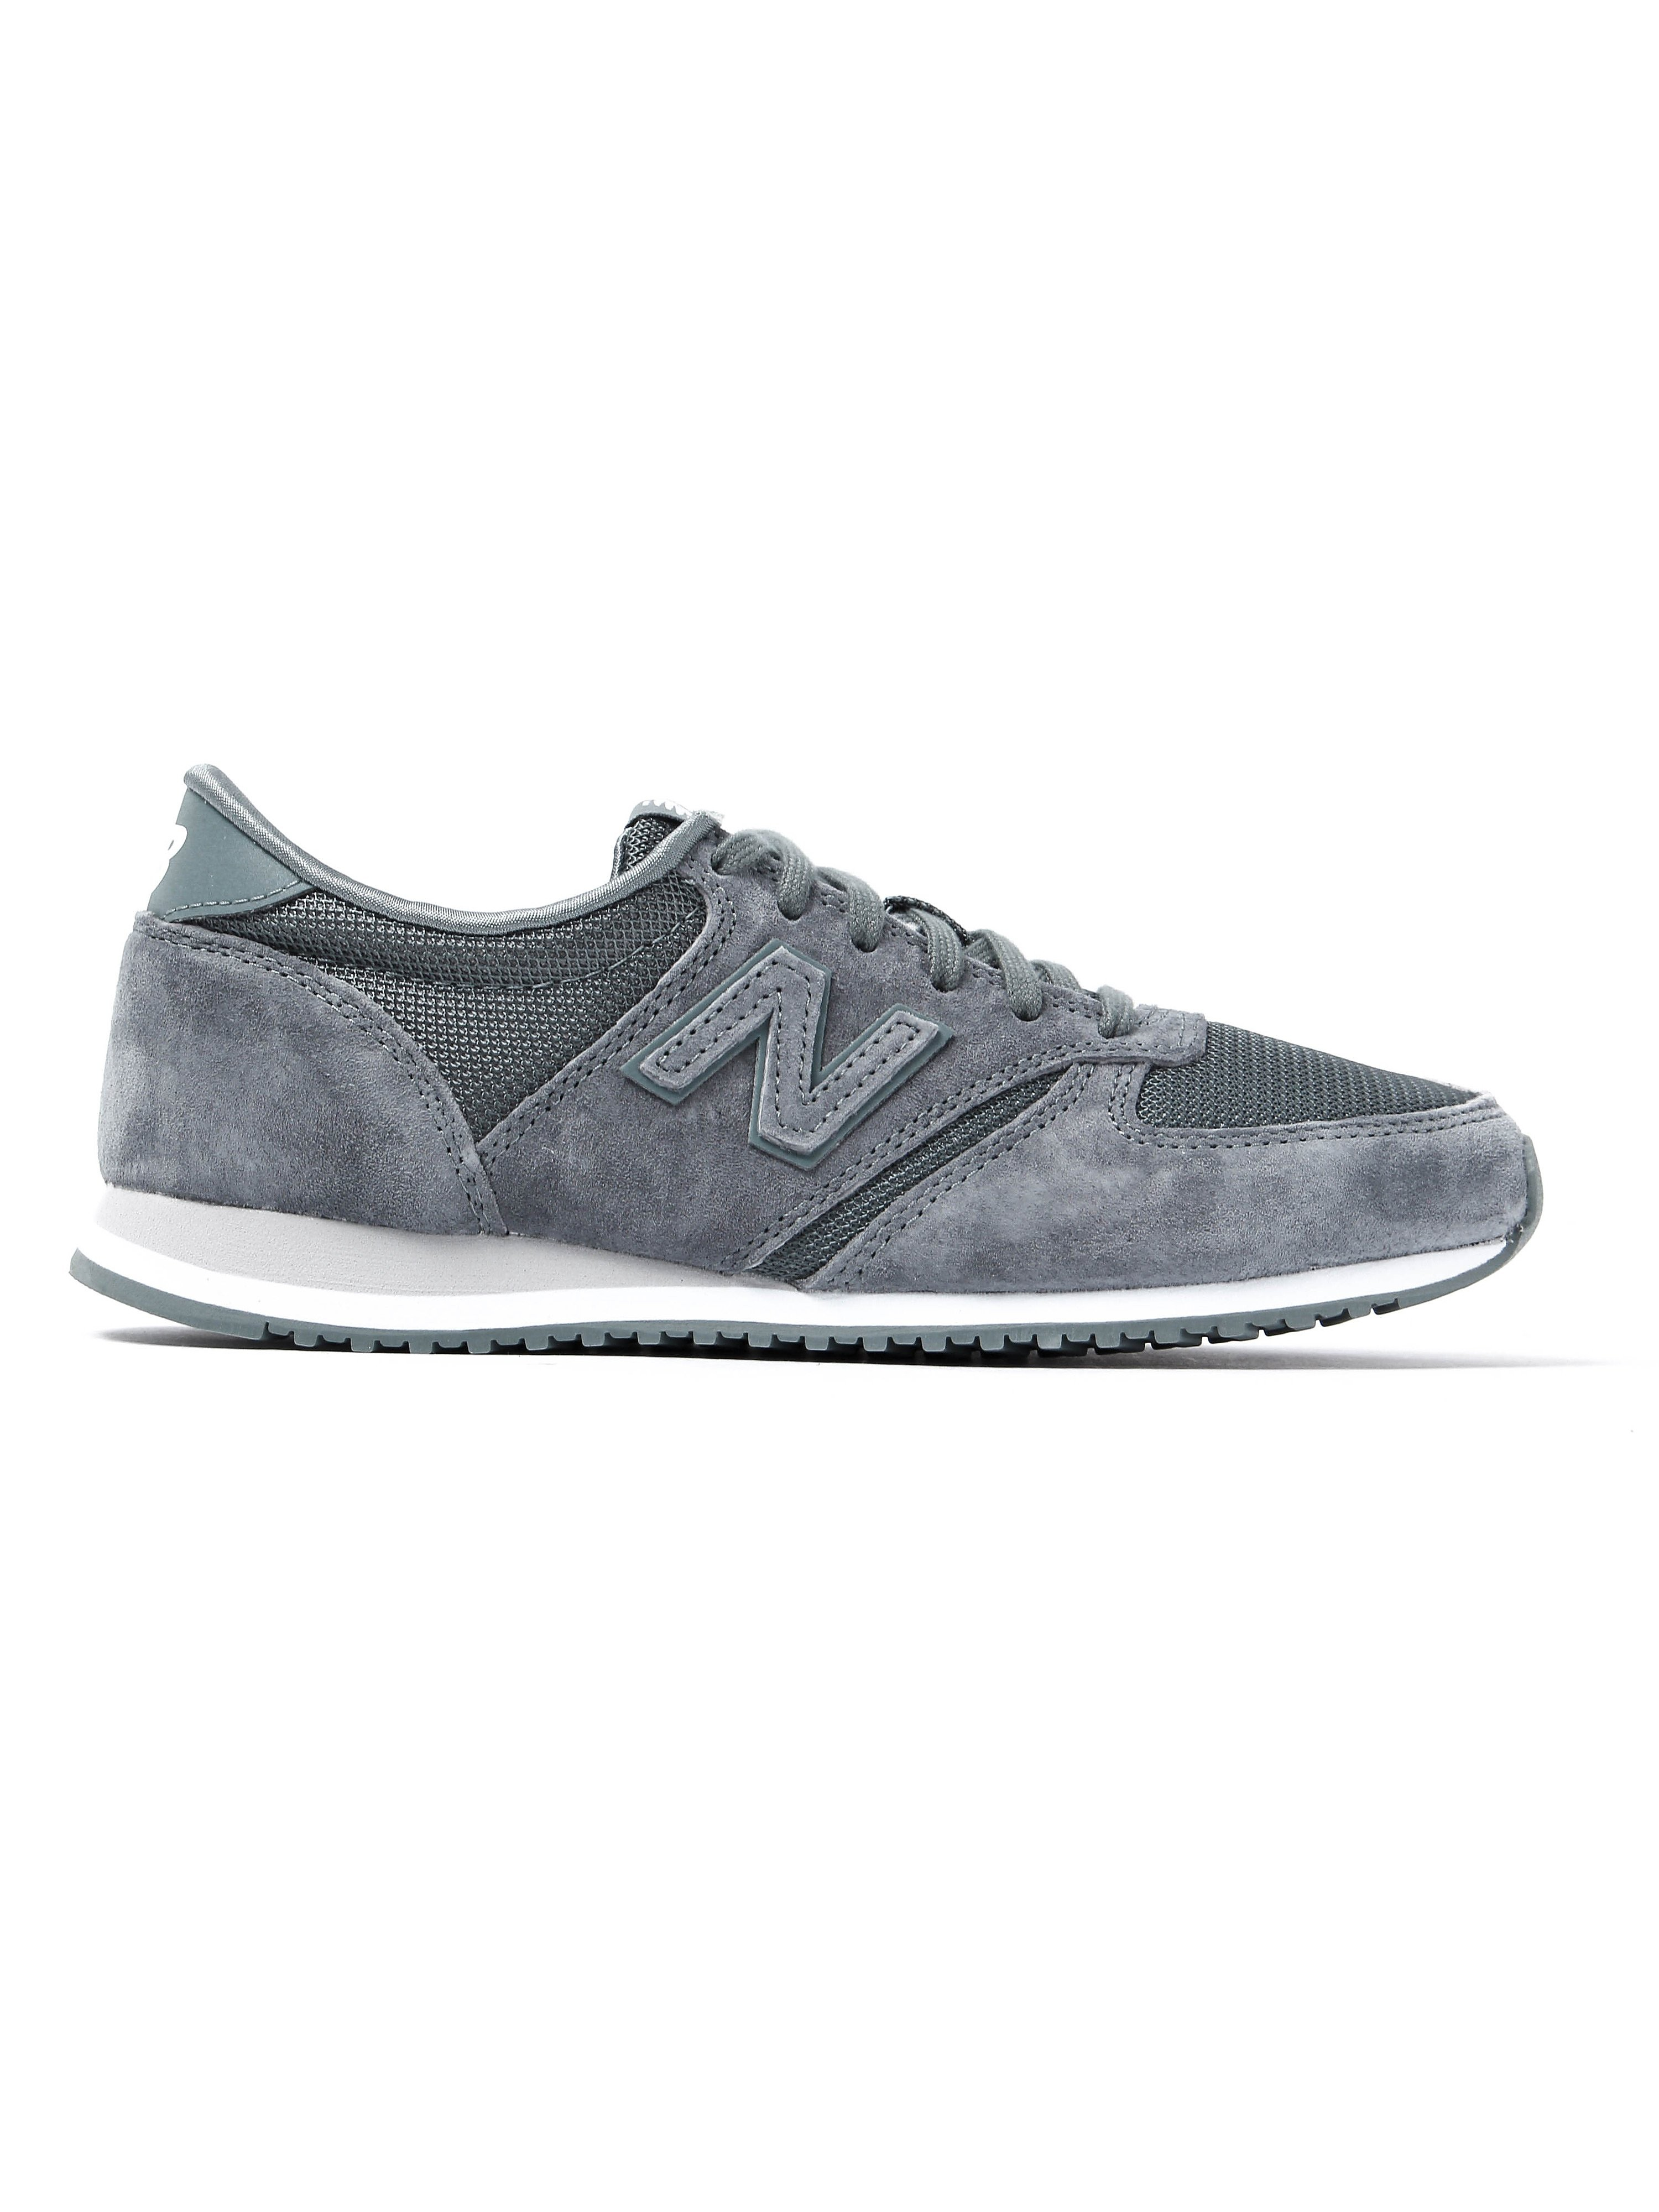 New Balance Women's 420 Trainers - Grey Suede